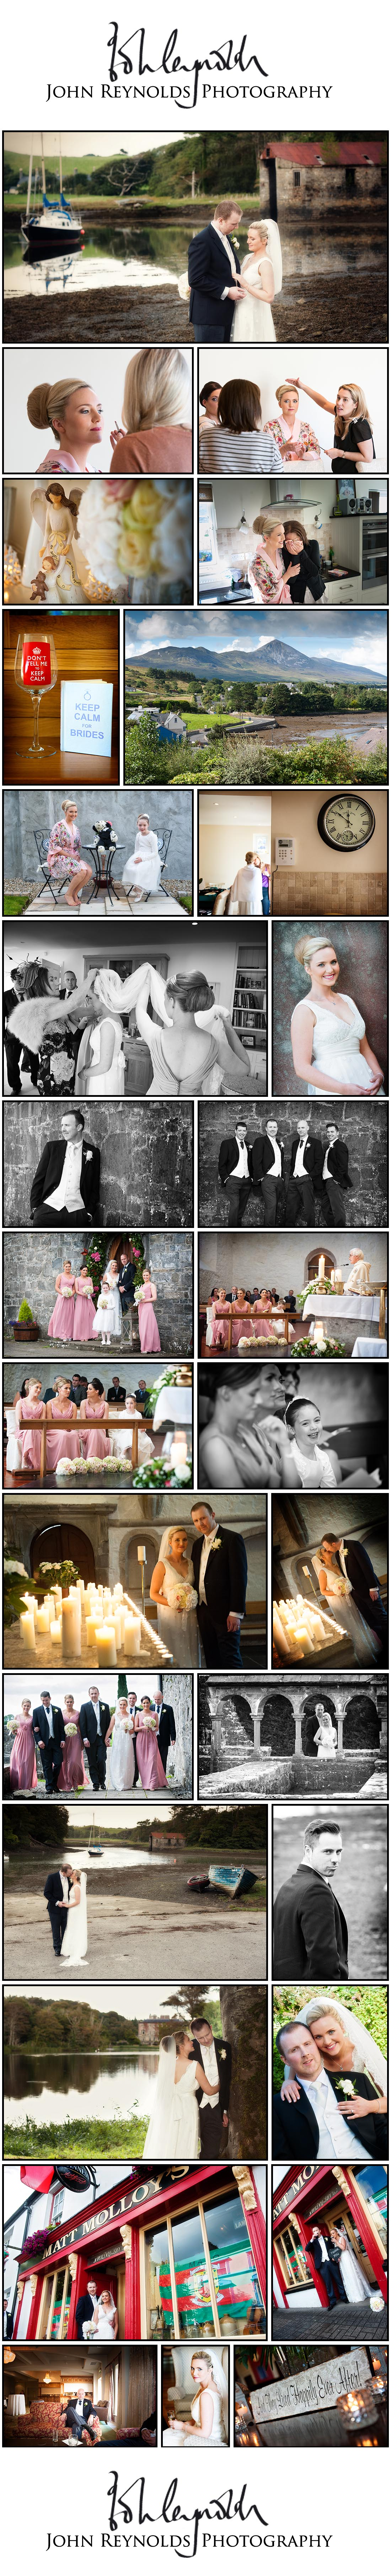 Blog Collage-Ruth & Fintan